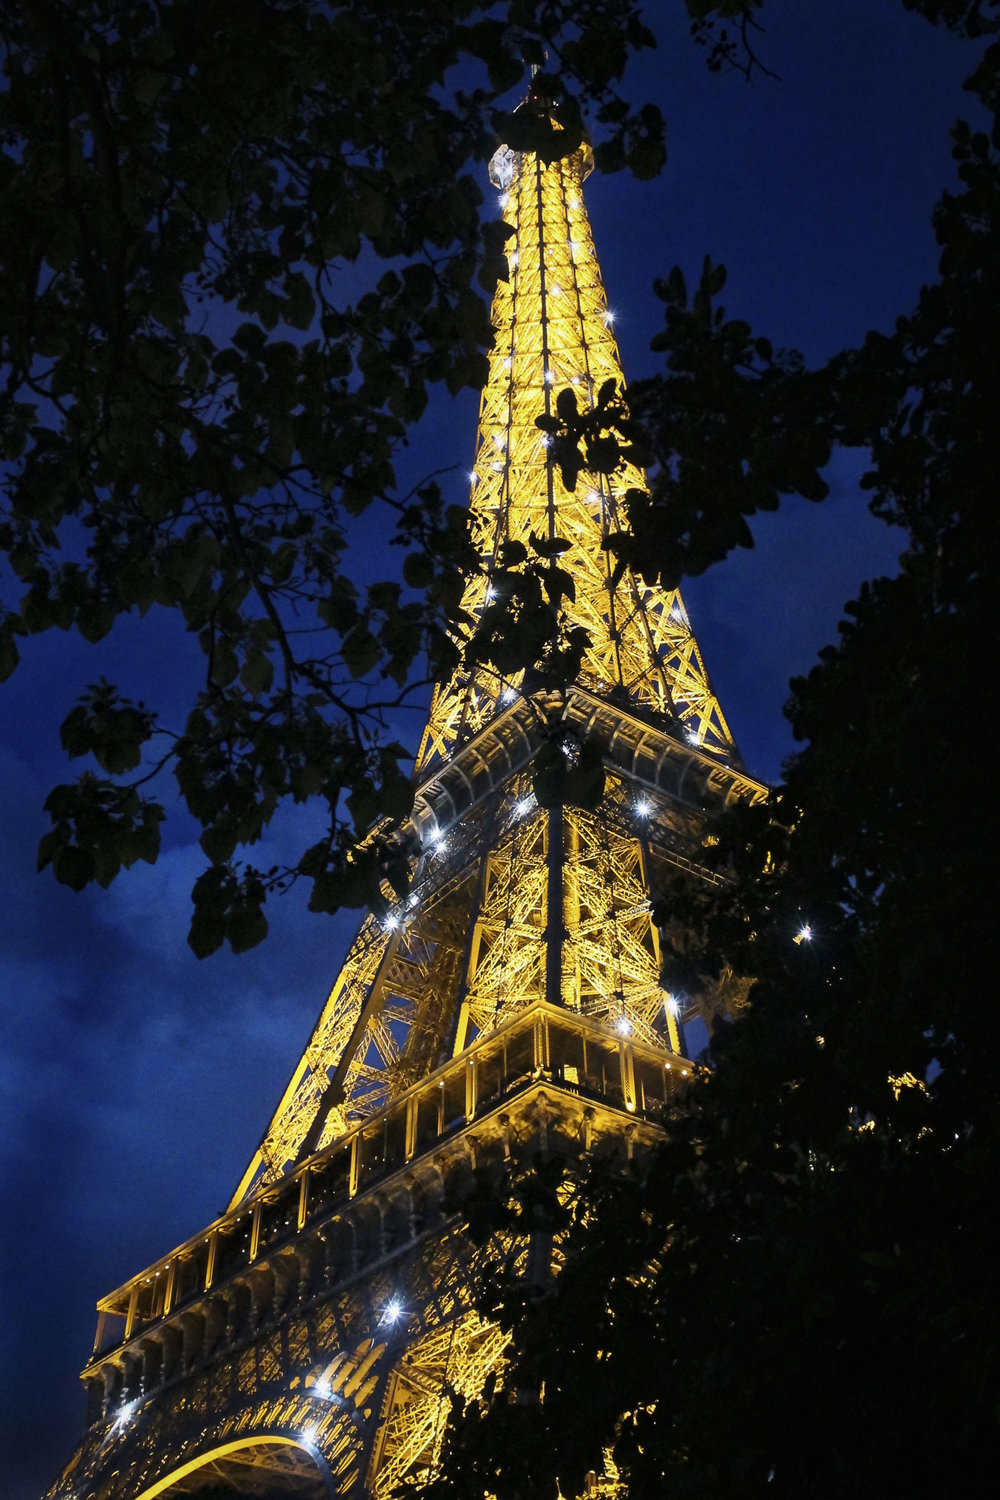 Golden Eiffel Tower.jpg